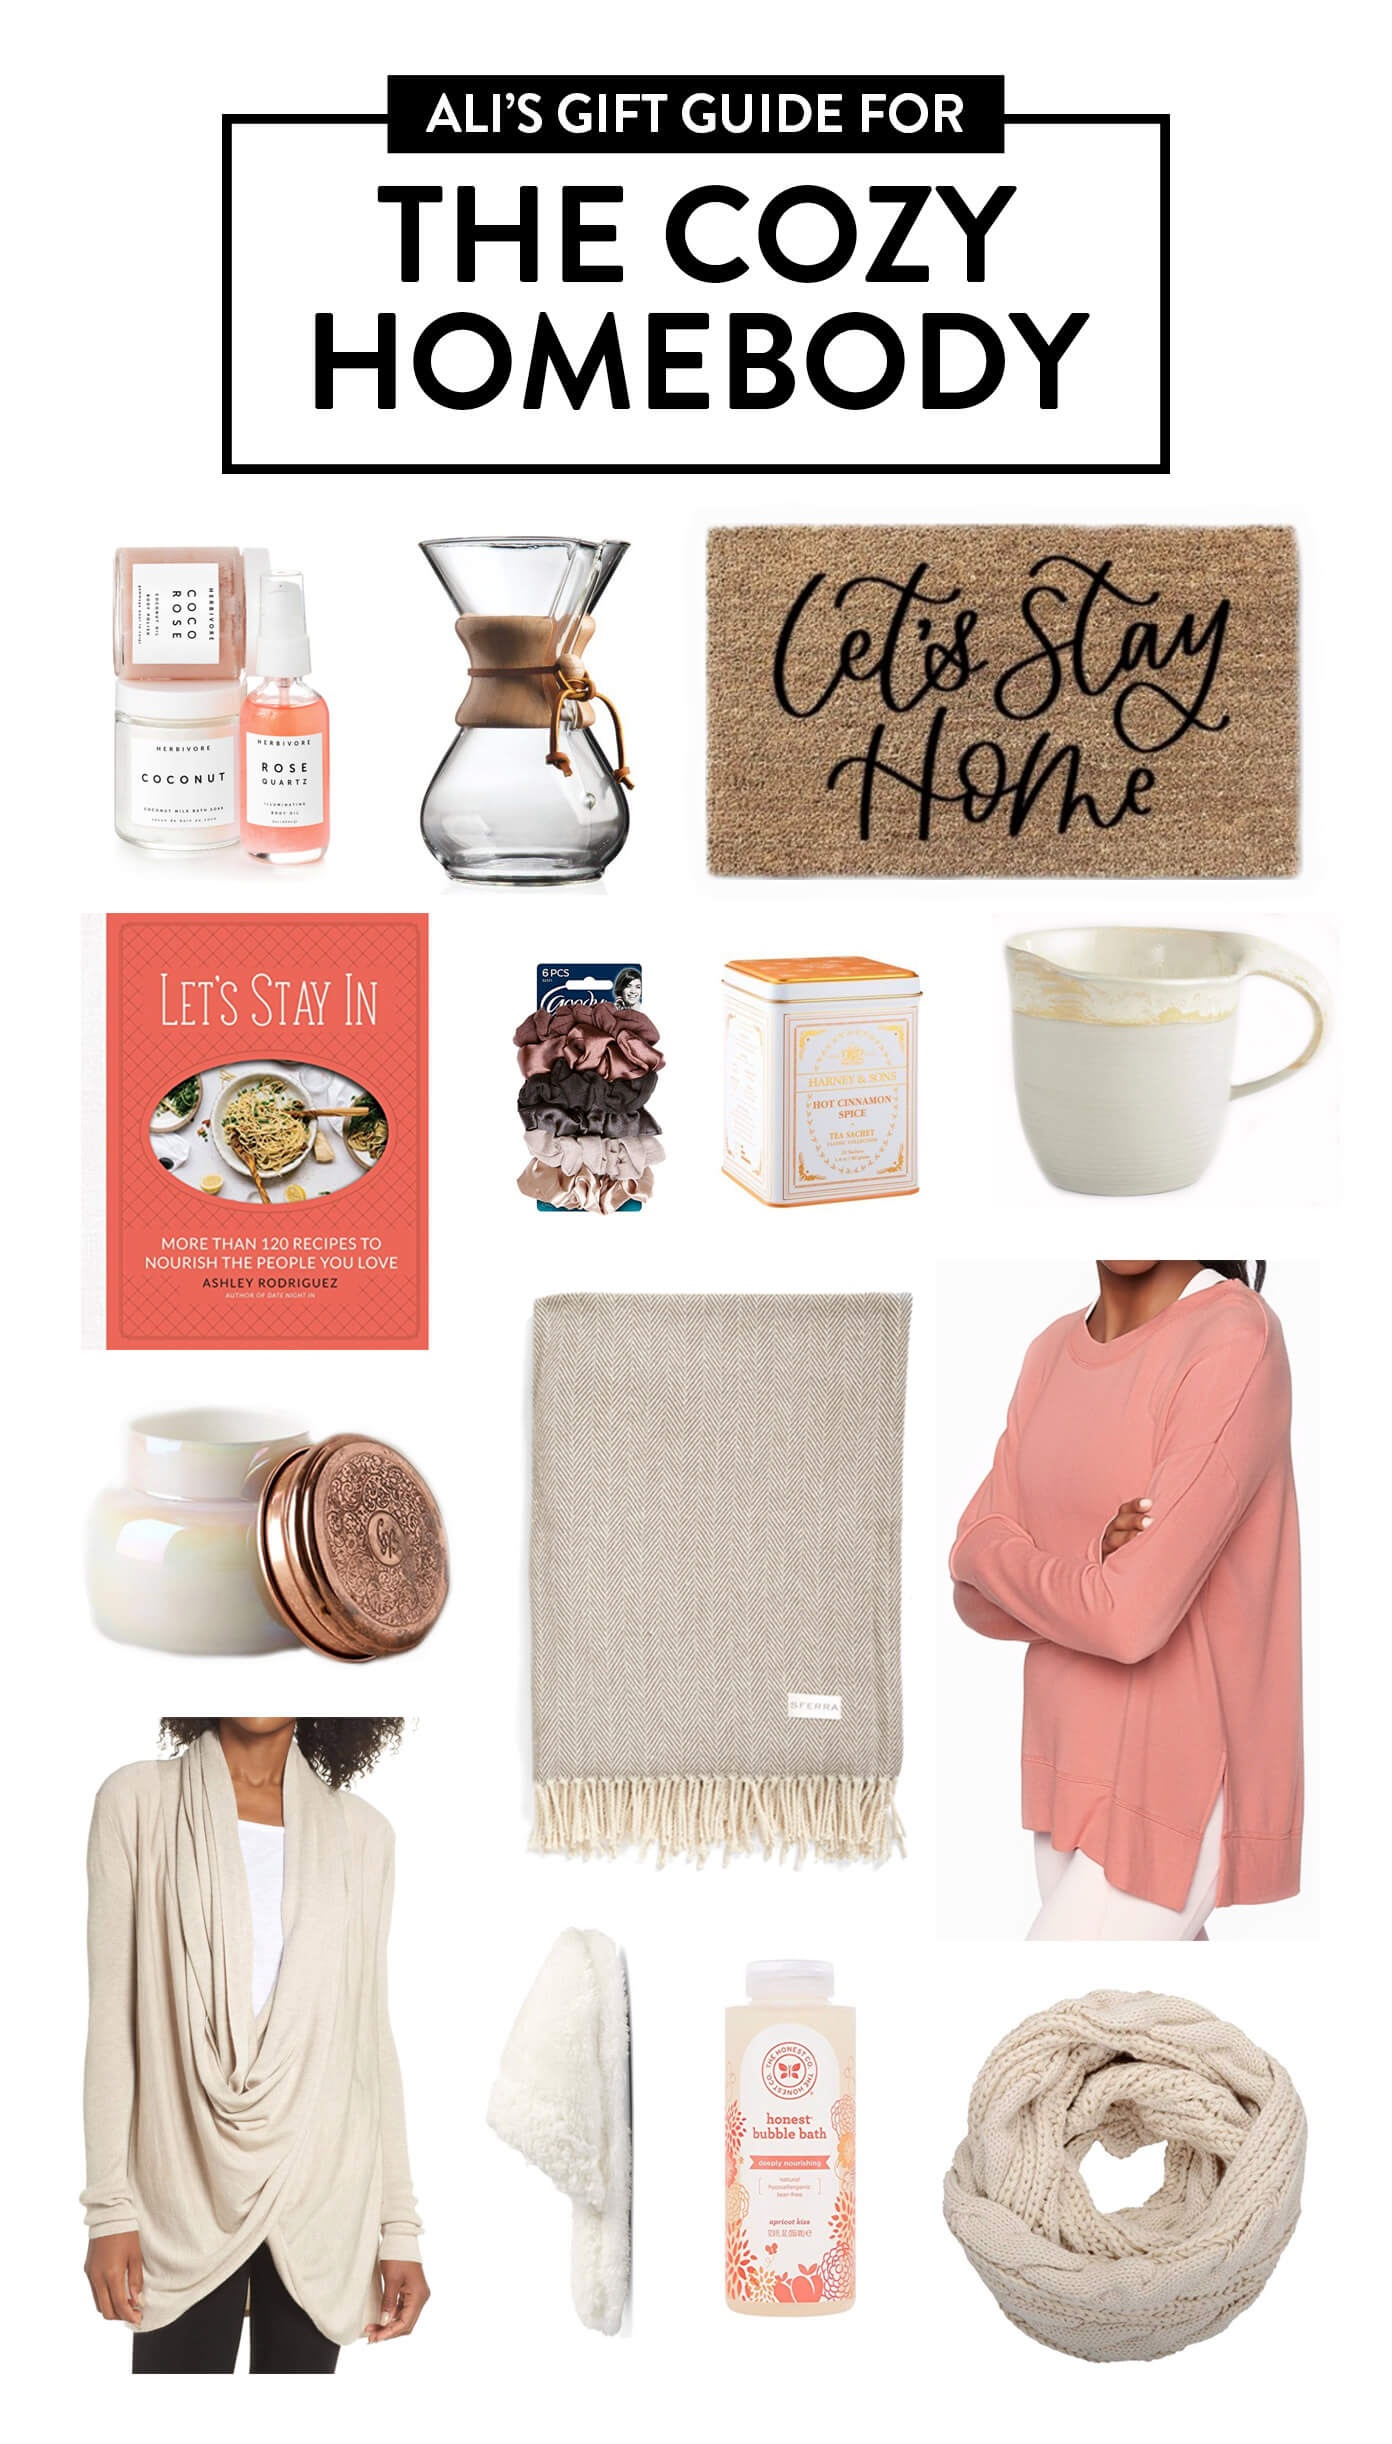 2018 Gimme Some Oven Gift Guide: The Cozy Homebody